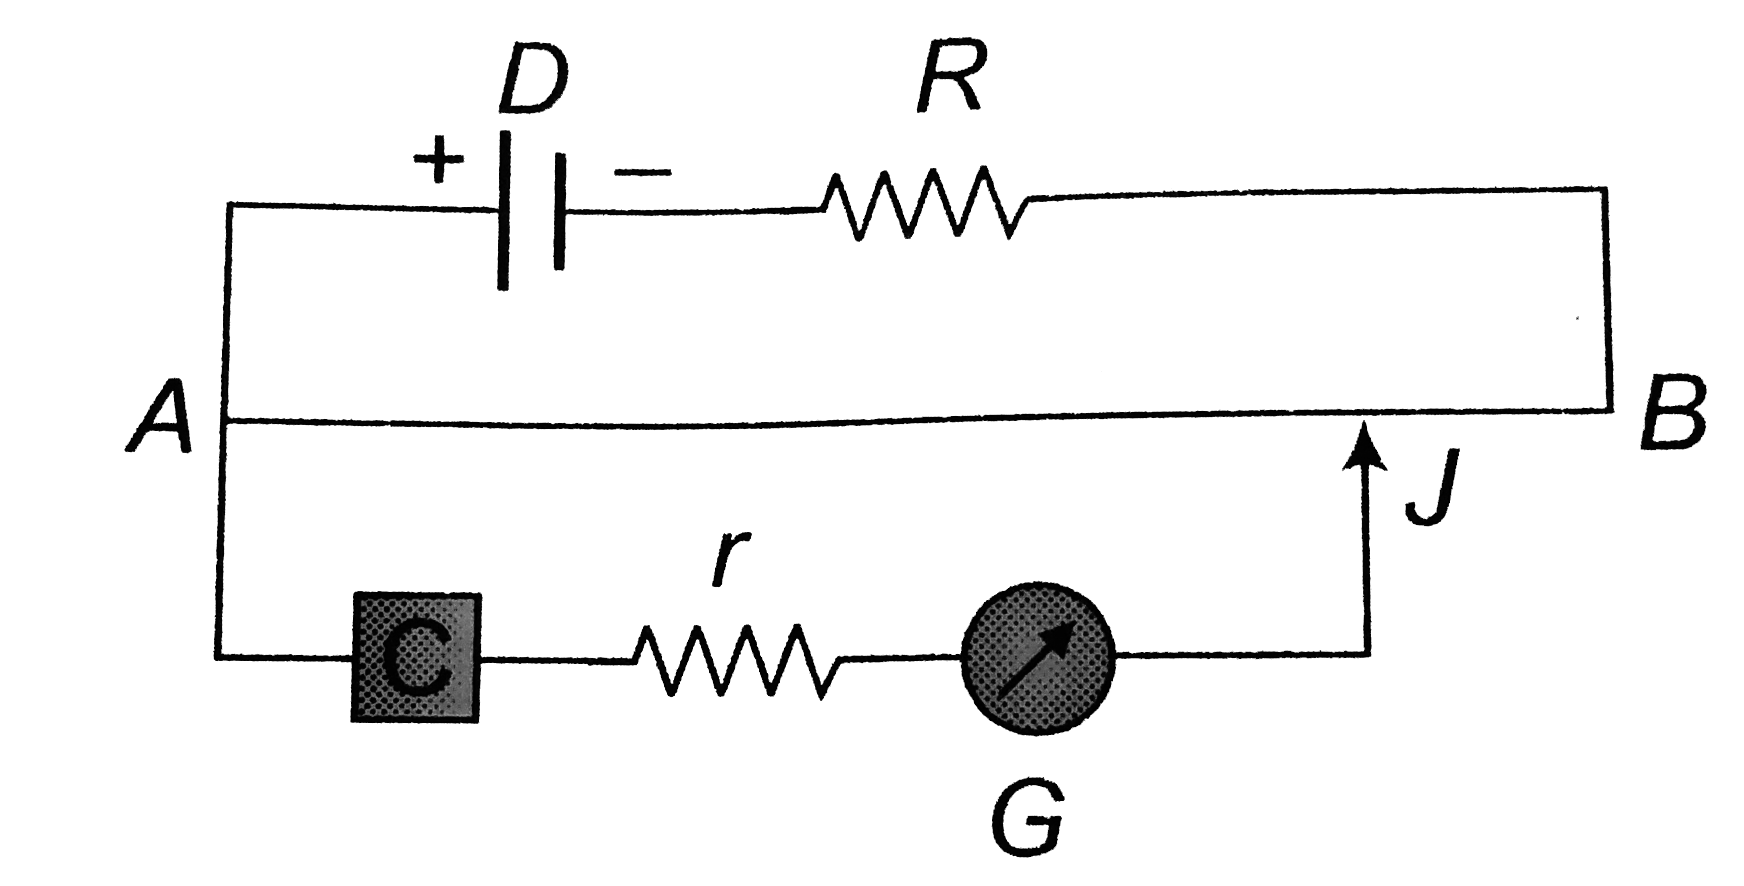 in the given potentiometer circuit, the resistance of the